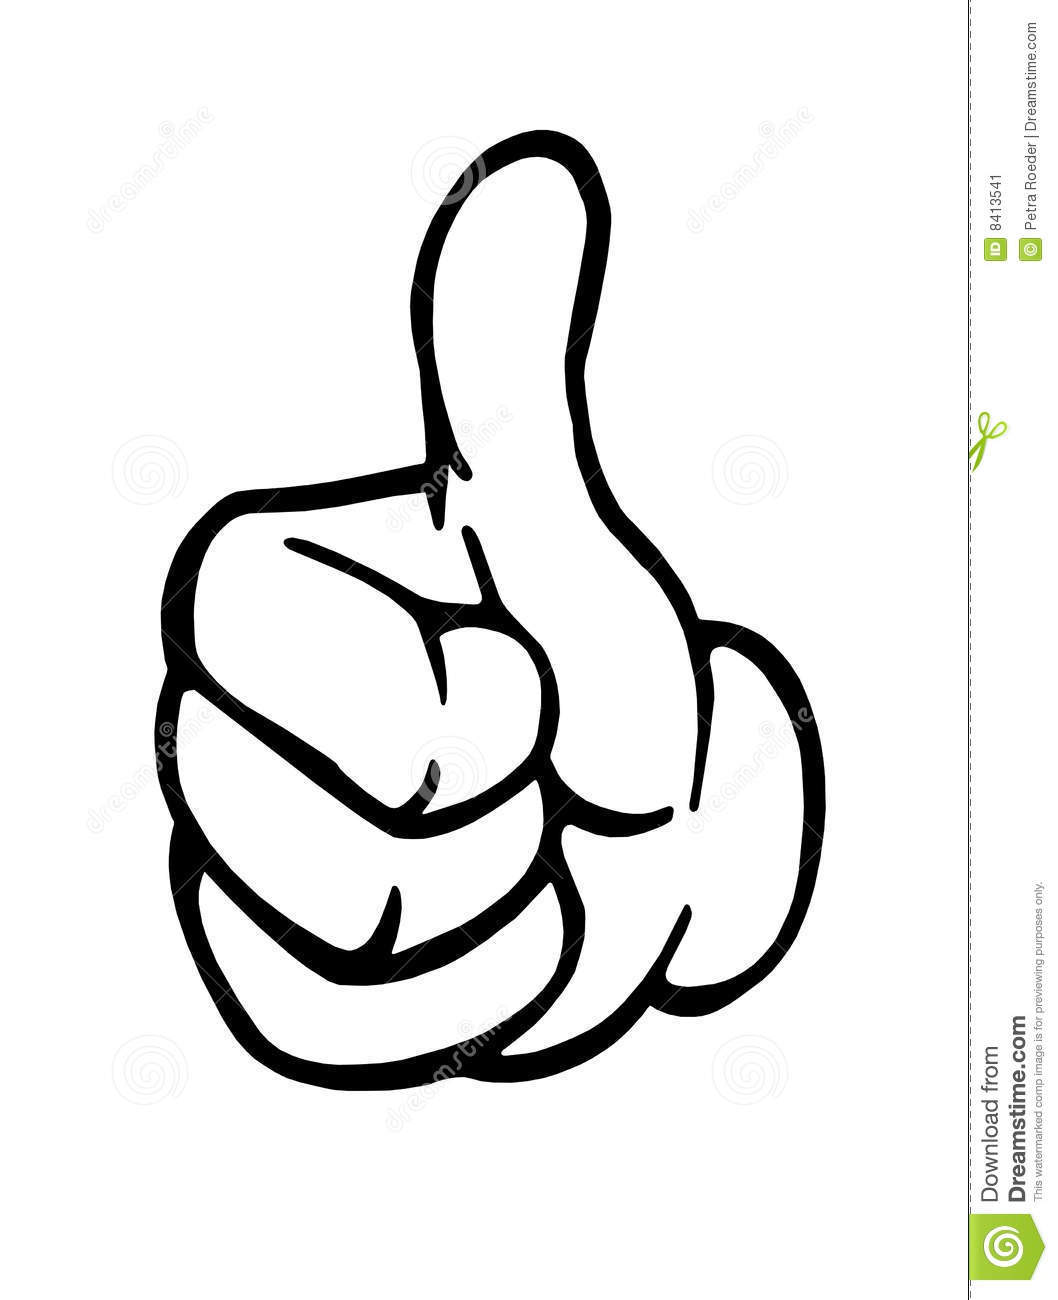 2 thumbs clipart jpg royalty free library Two Thumbs Up Clipart | Free download best Two Thumbs Up Clipart on ... jpg royalty free library